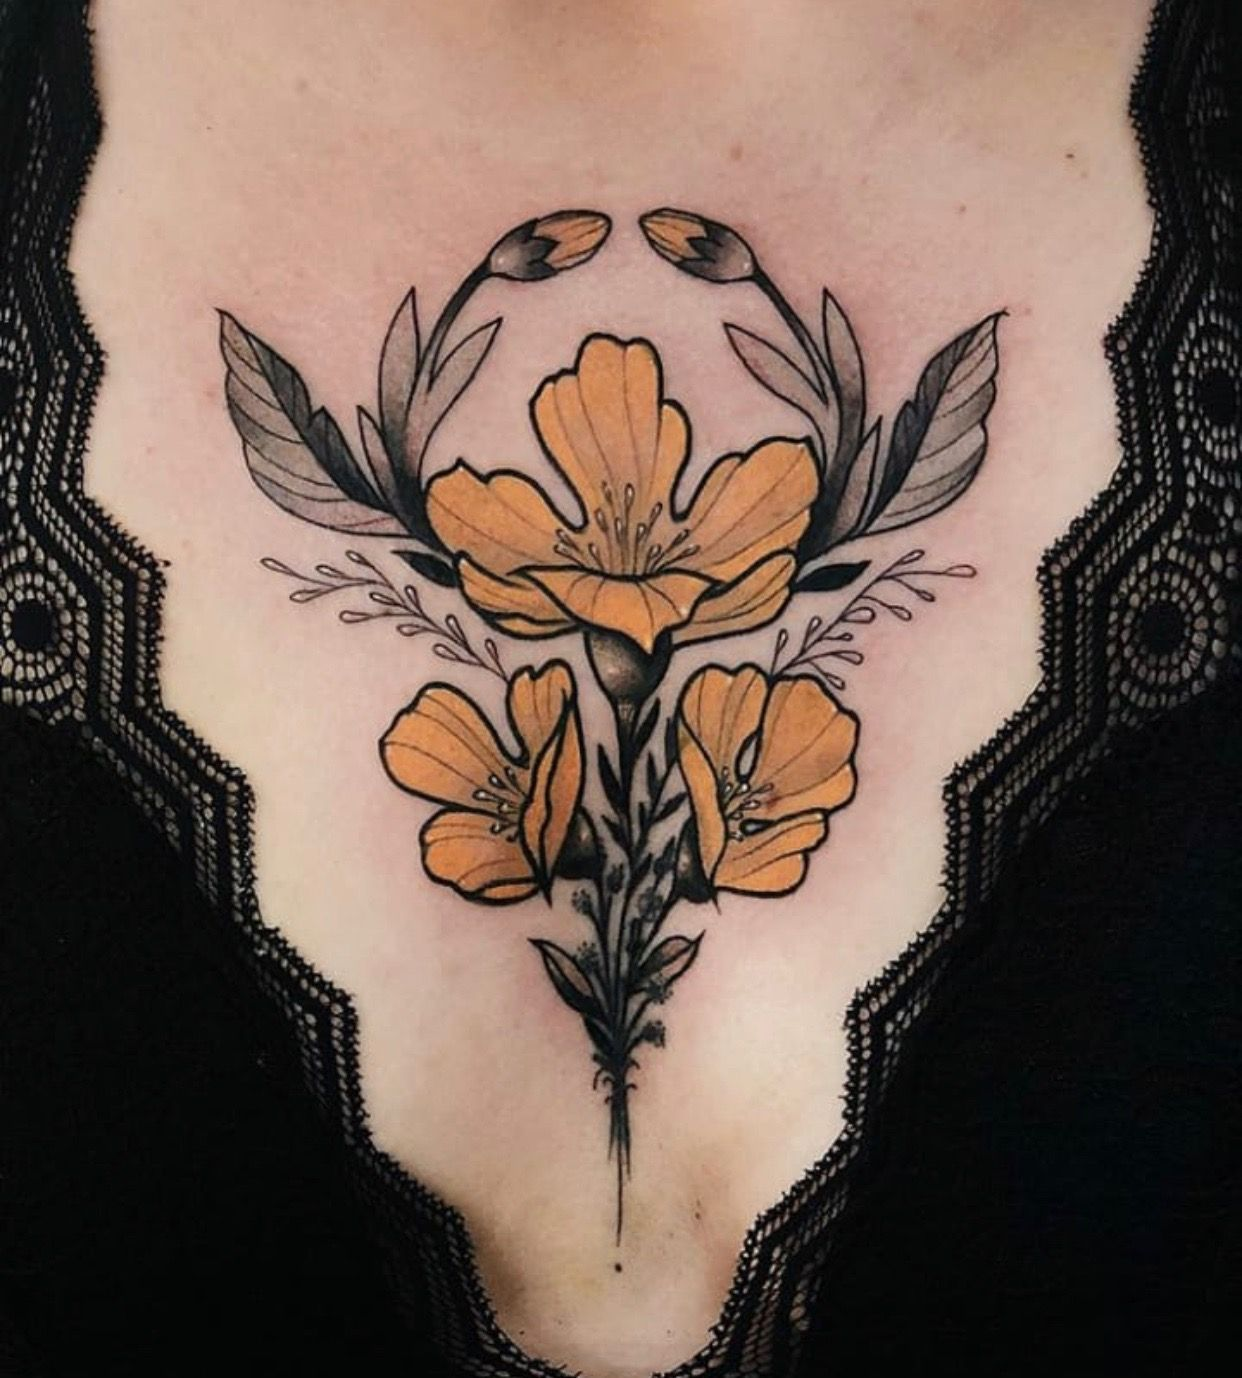 Pin By Devon Wallace On Tat Tews In 2020 Tattoos Chest Tattoo Flowers Sleeve Tattoos